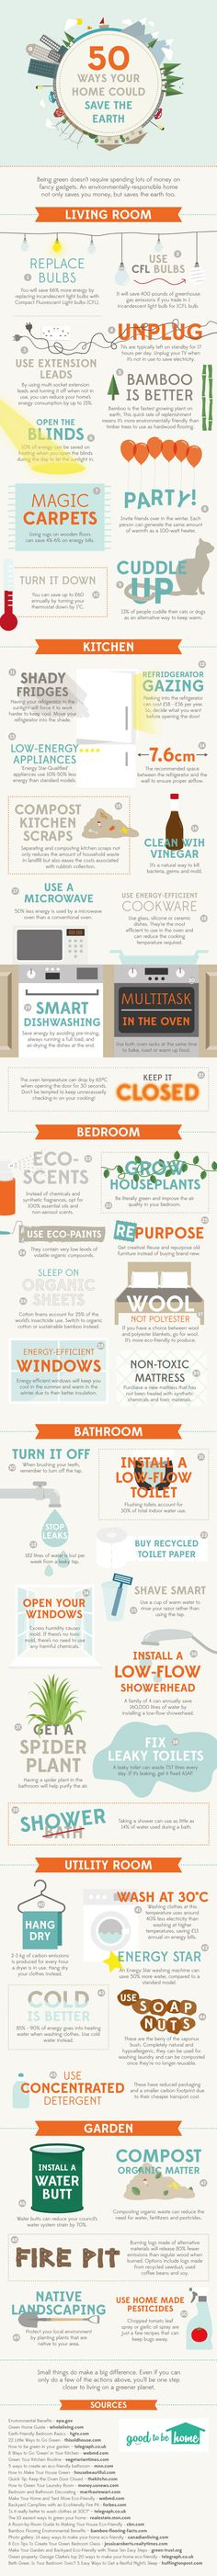 50 Energy Efficient Mindfulness Tips for Your Home | Yogi Surprise